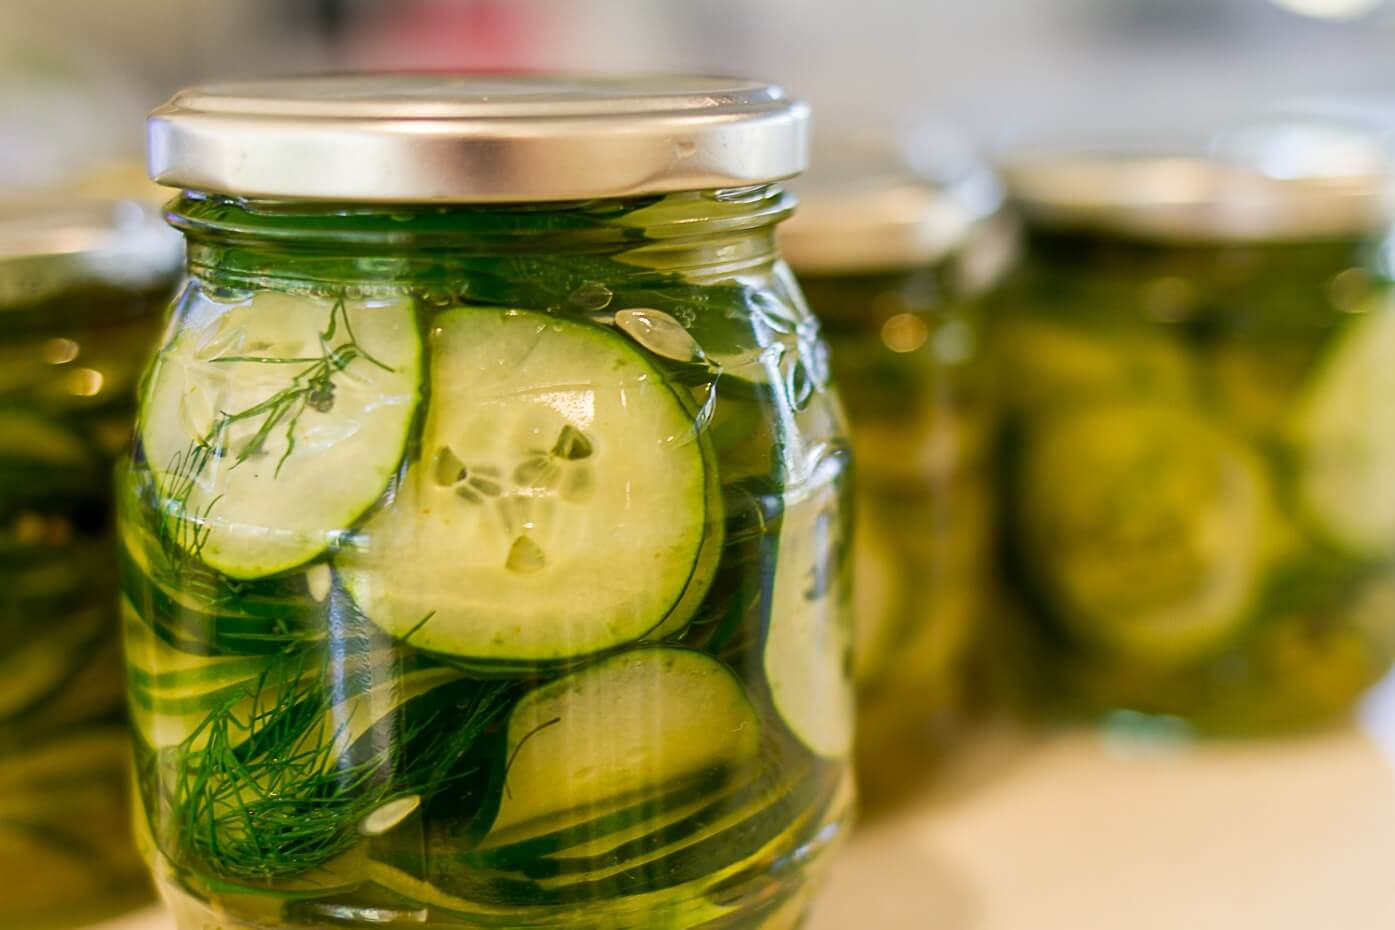 Why Do Pregnant Women Crave Pickles; Benefits and Risks of Pickles